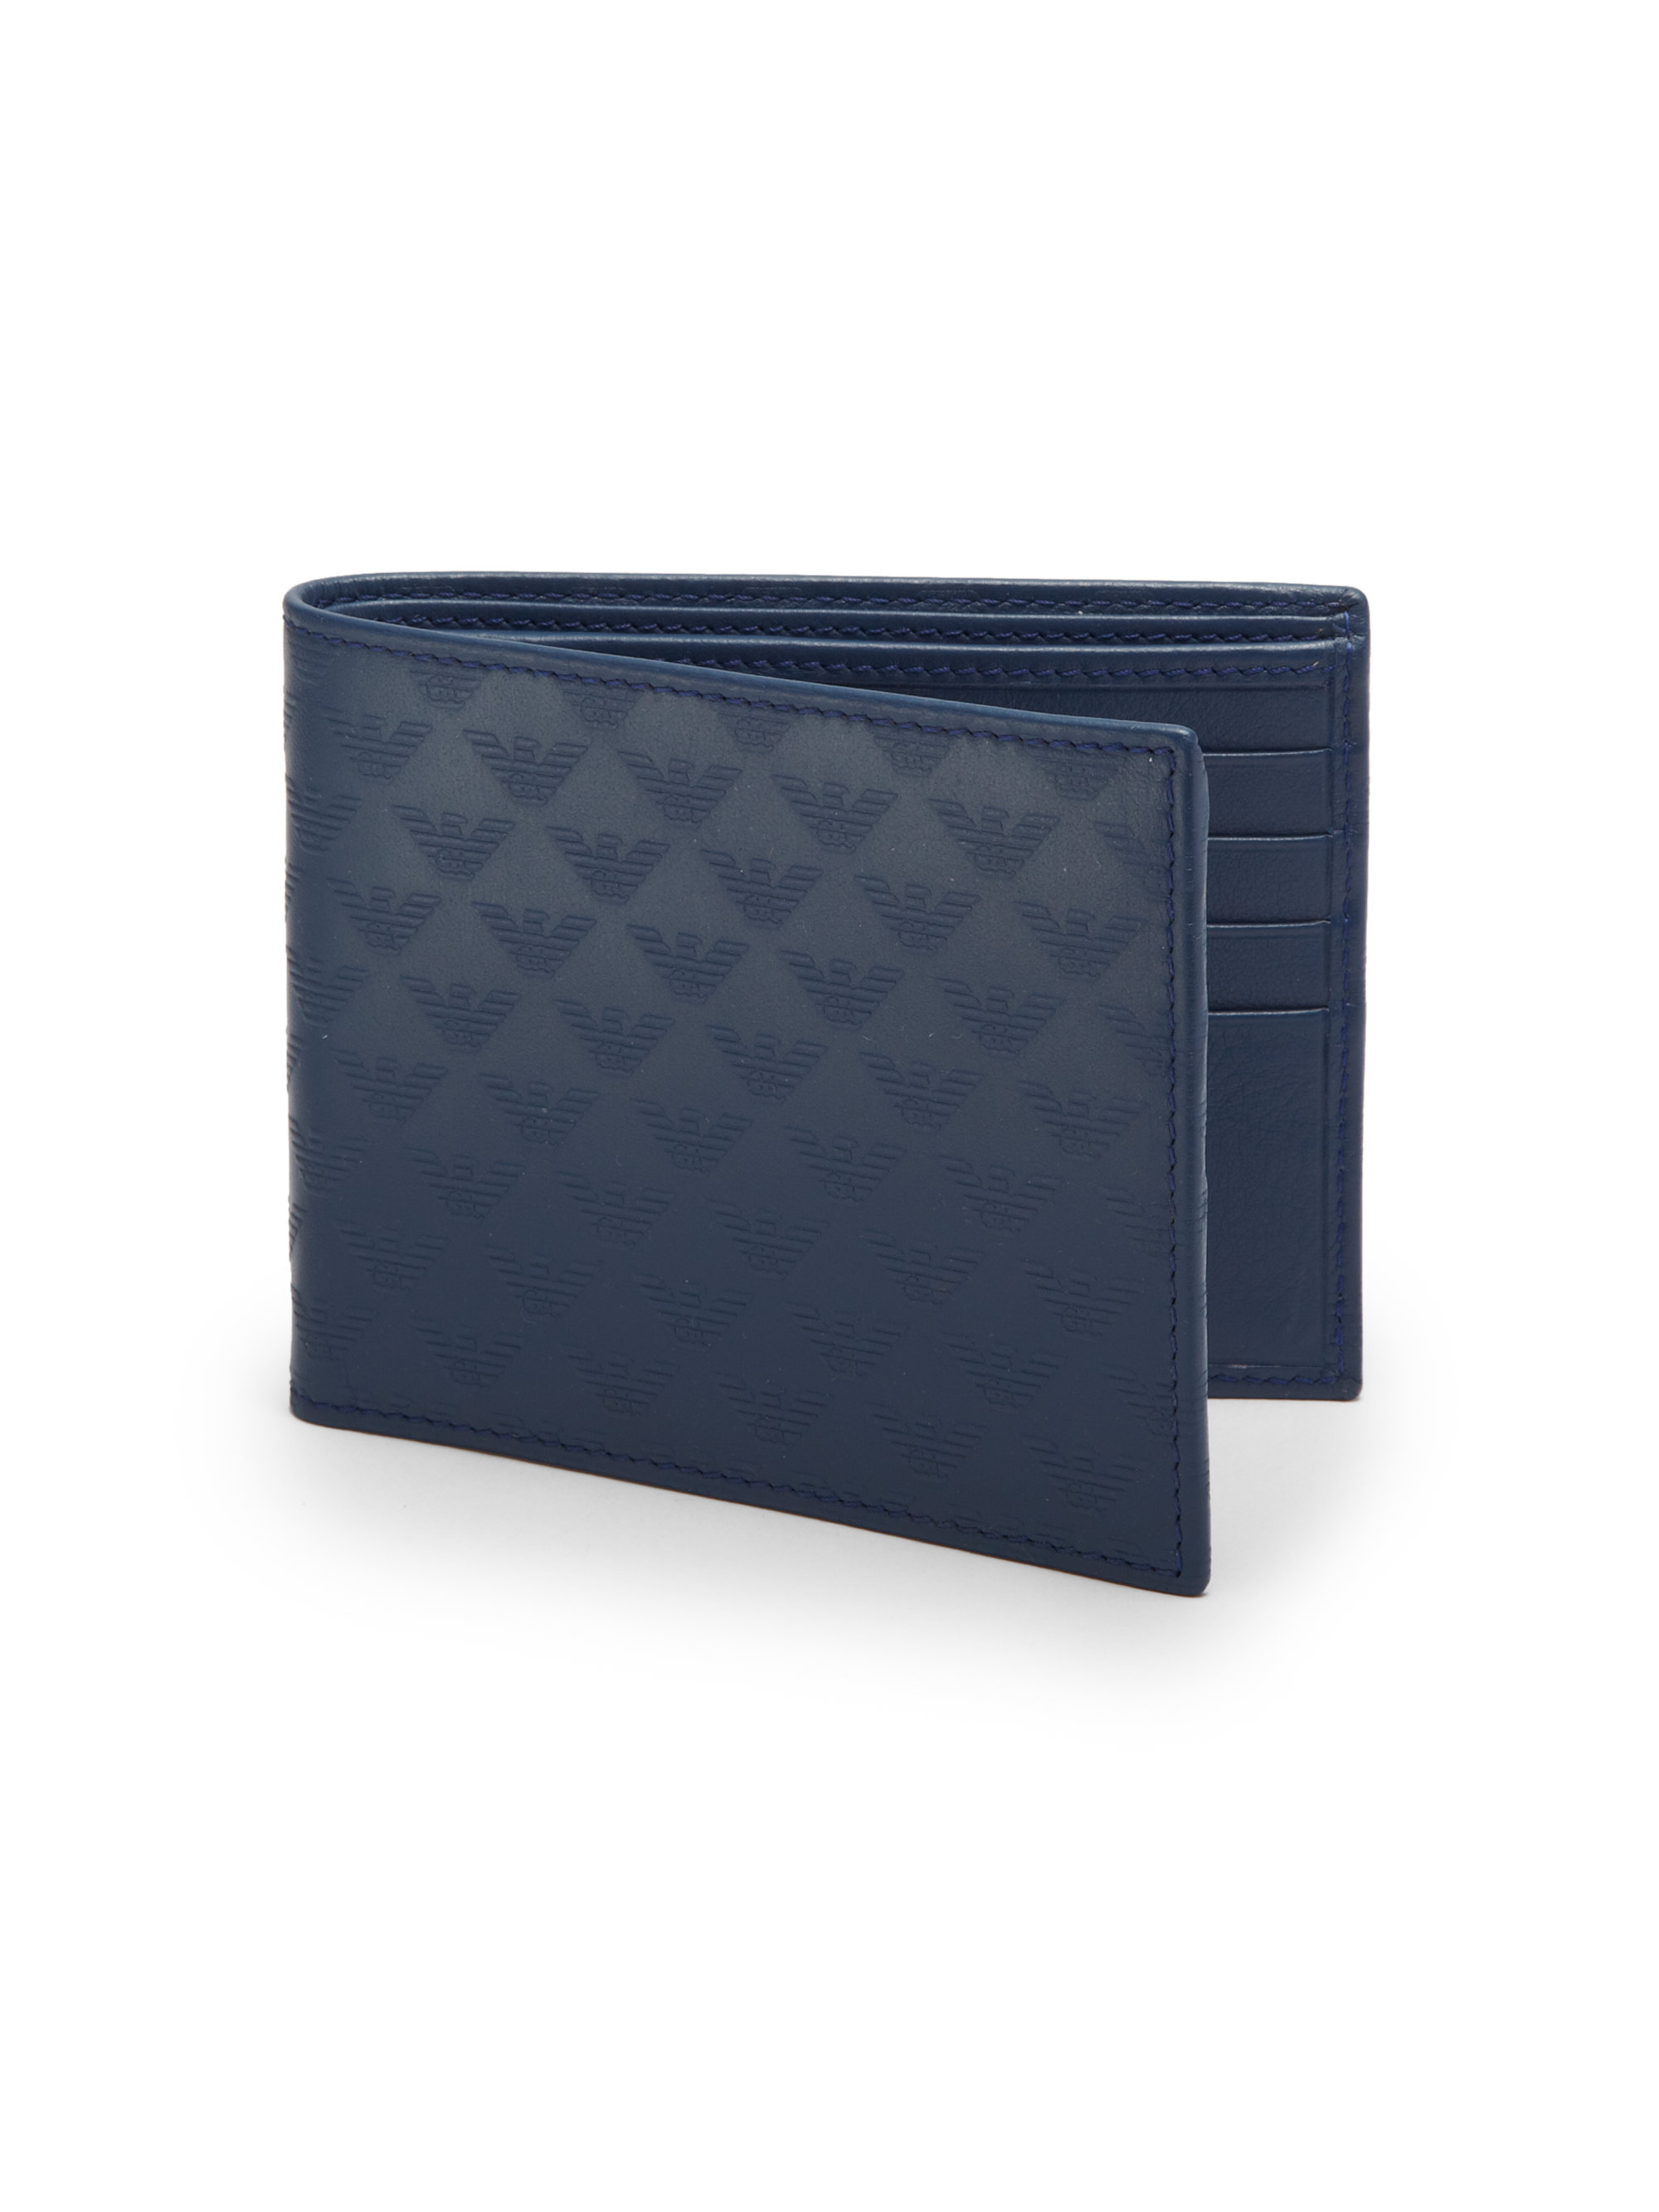 Lyst Emporio Armani Leather Wallet In Blue For Men